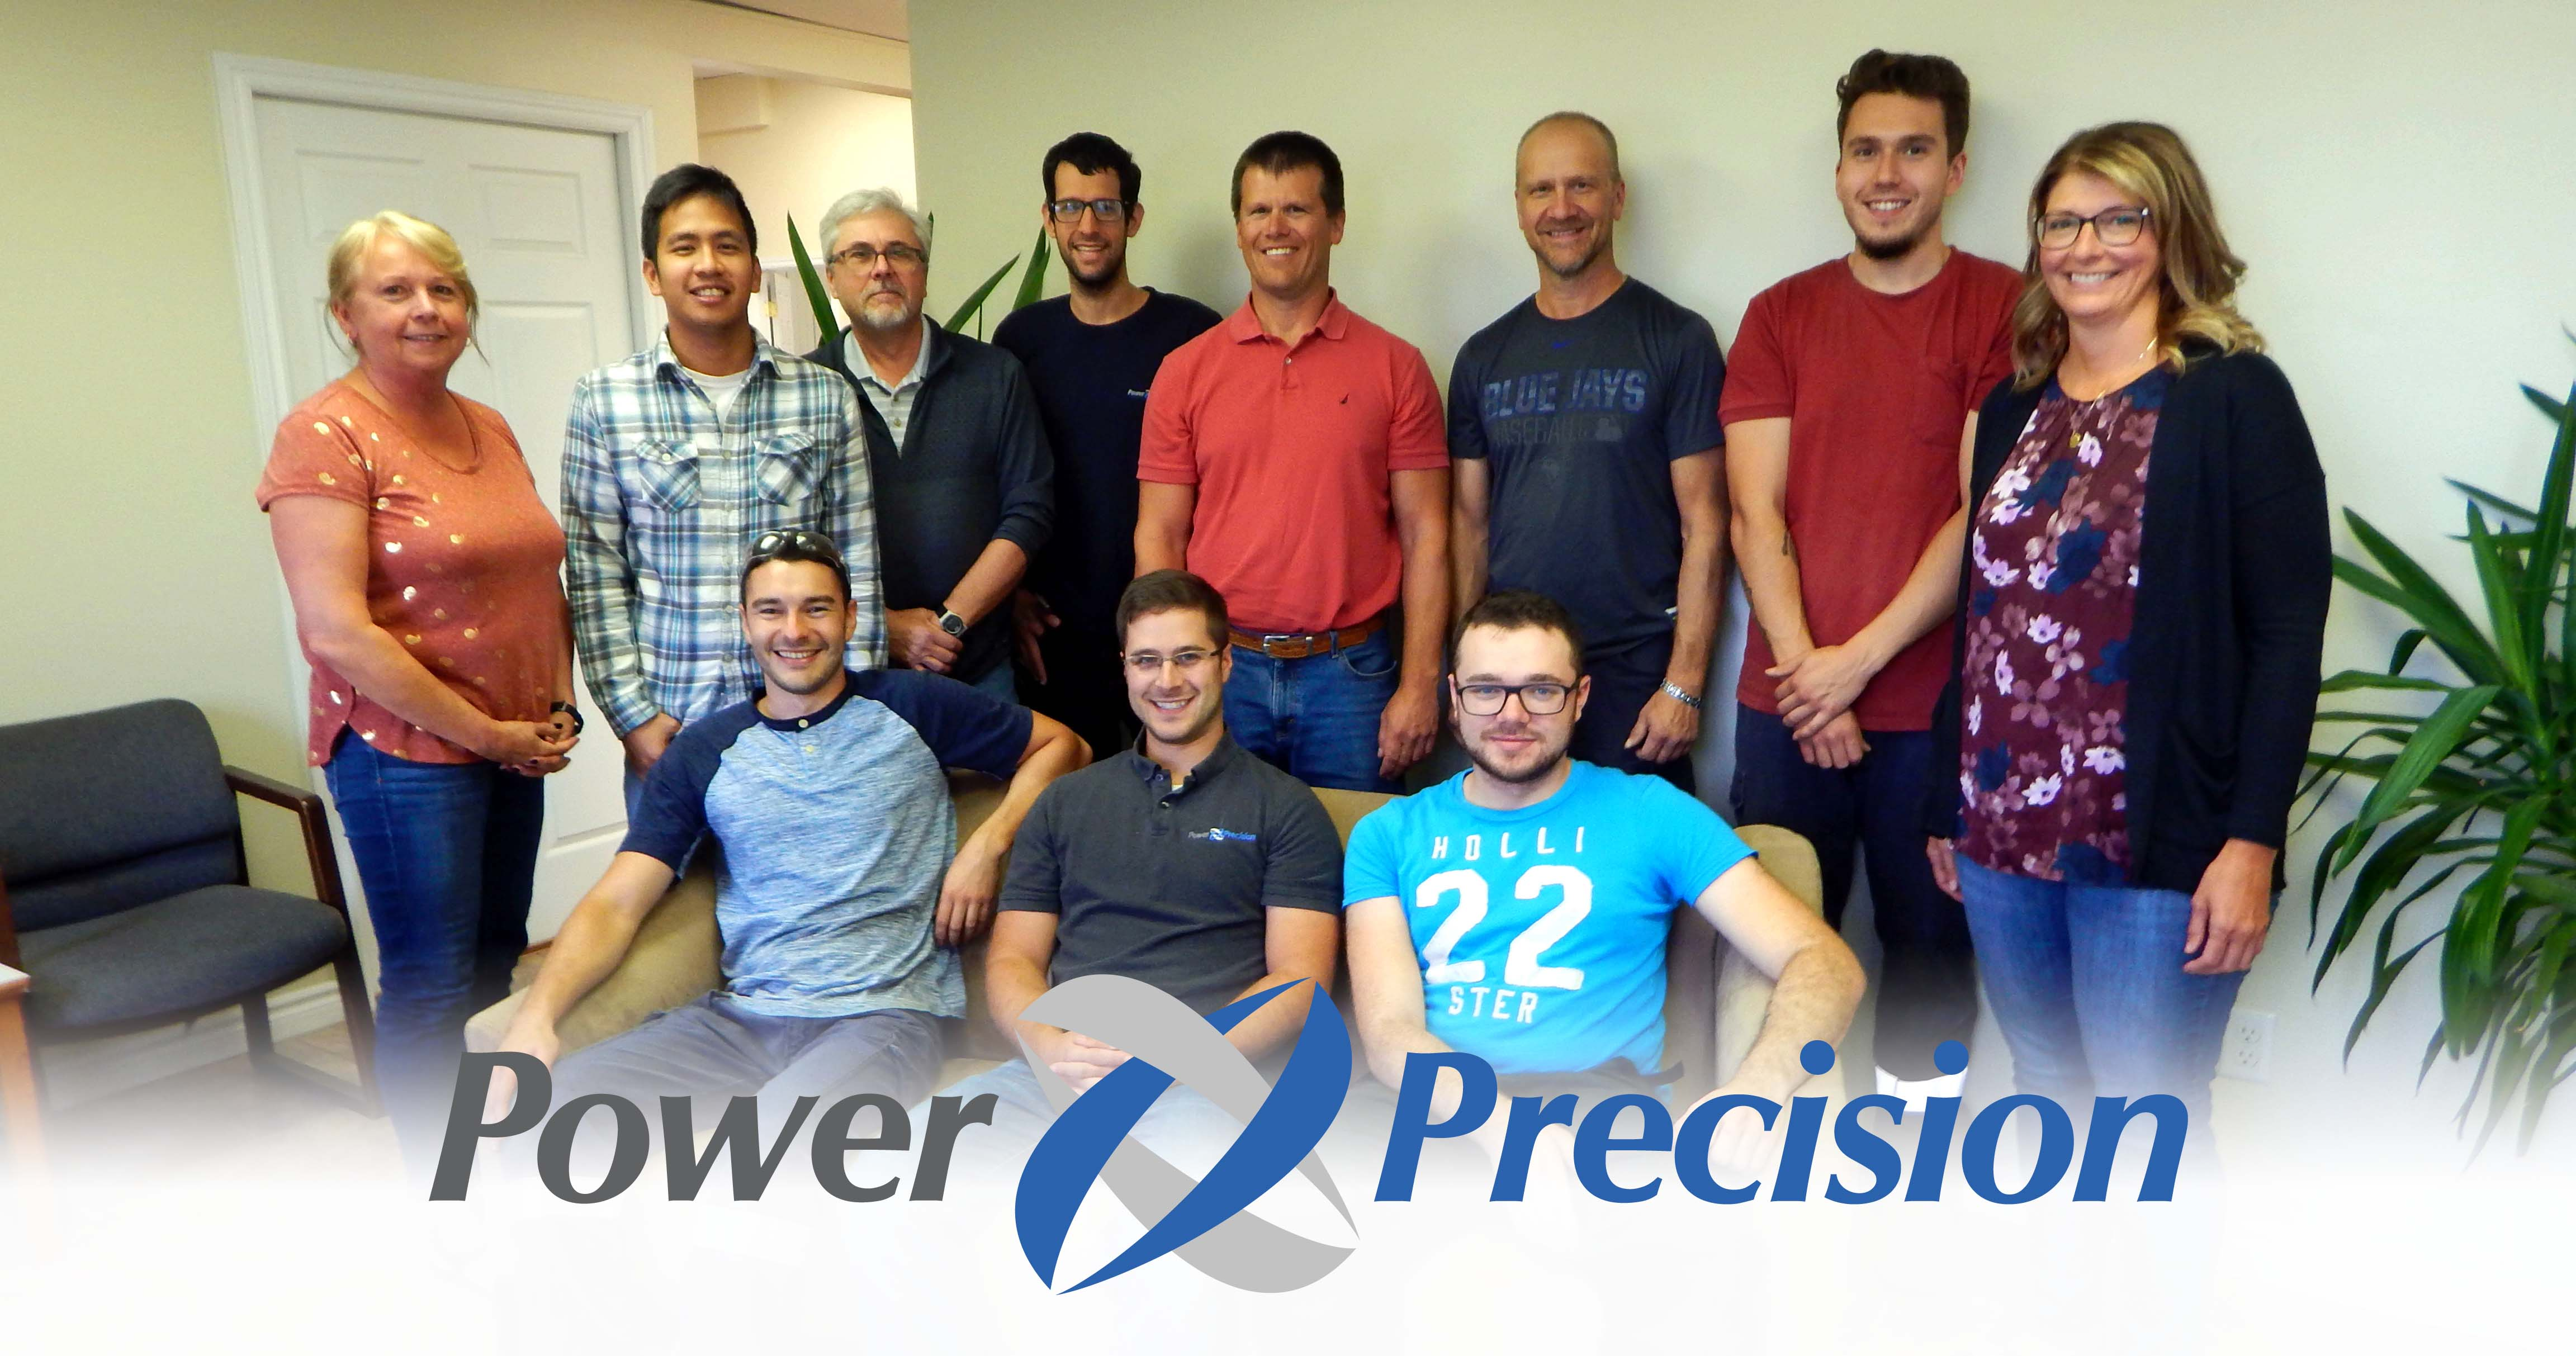 Read more about the article 'Making sure quality and safety are number one' is the key to Power Precision's success in Bathurst